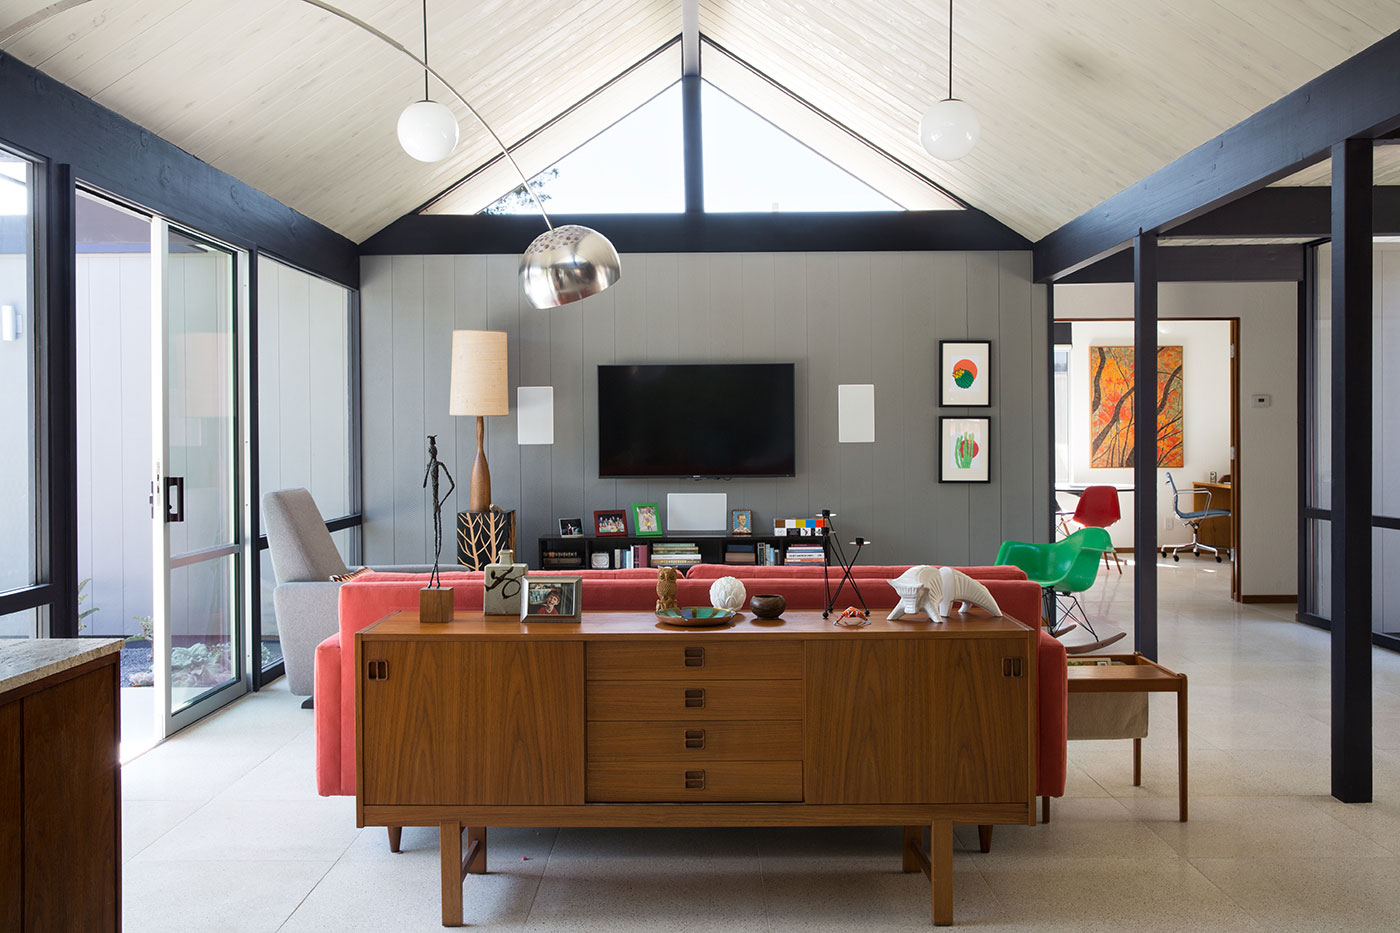 Renovation of an Eichler Home in Sunnyvale